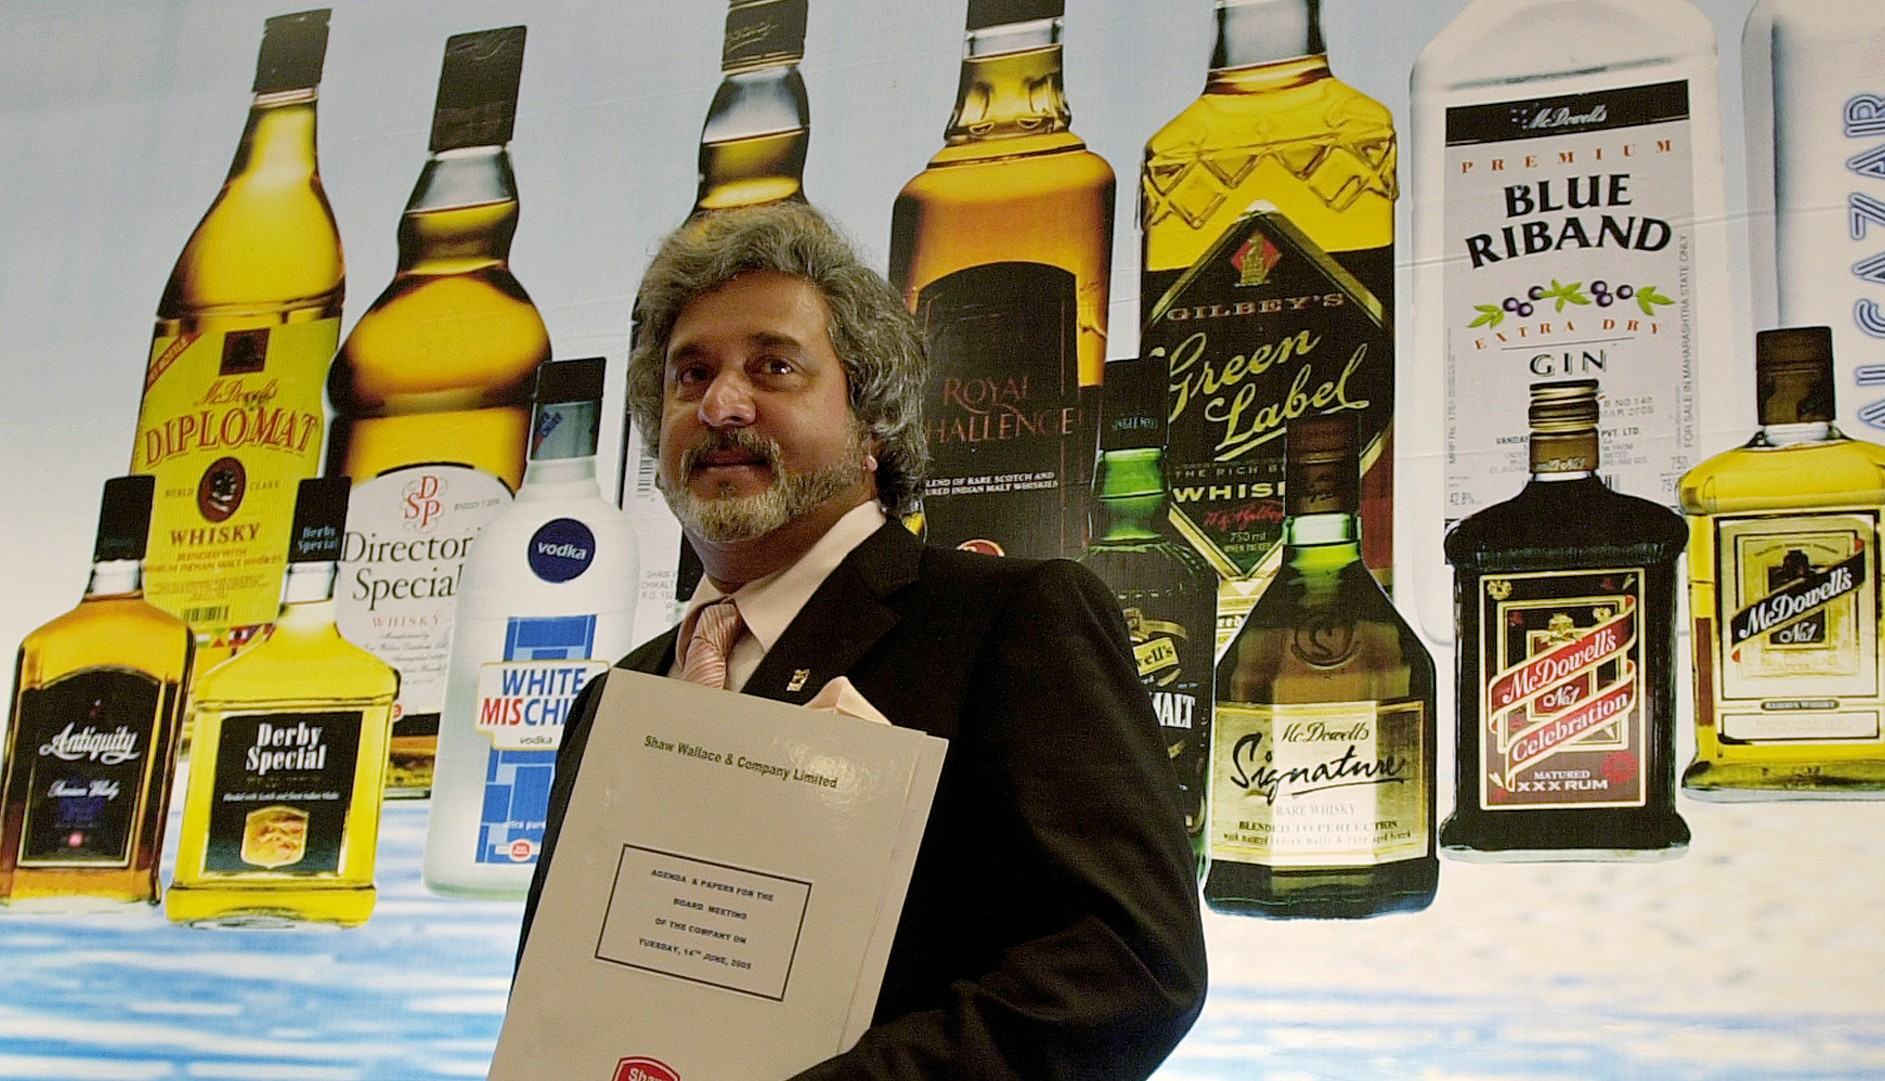 FILE- In this June 14, 2005 file photo, Vijay Mallya, Chairman UB Group and Shaw Wallace, poses in front of a poster showing different liquor brands of his company's spirits business United Spirits Ltd., at a press conference in Mumbai, India. Diageo PLC, the world's largest distiller, says it will buy a 53.4 percent stake in the Indian drinks manufacturer United Spirits Ltd. in a deal worth $2 billion. Diageo shares rose 0.2 percent Friday morning, Nov. 9, 2012, to 17.93 pounds on the London Stock Exchange. (AP Photo/Aijaz Rahi, File)